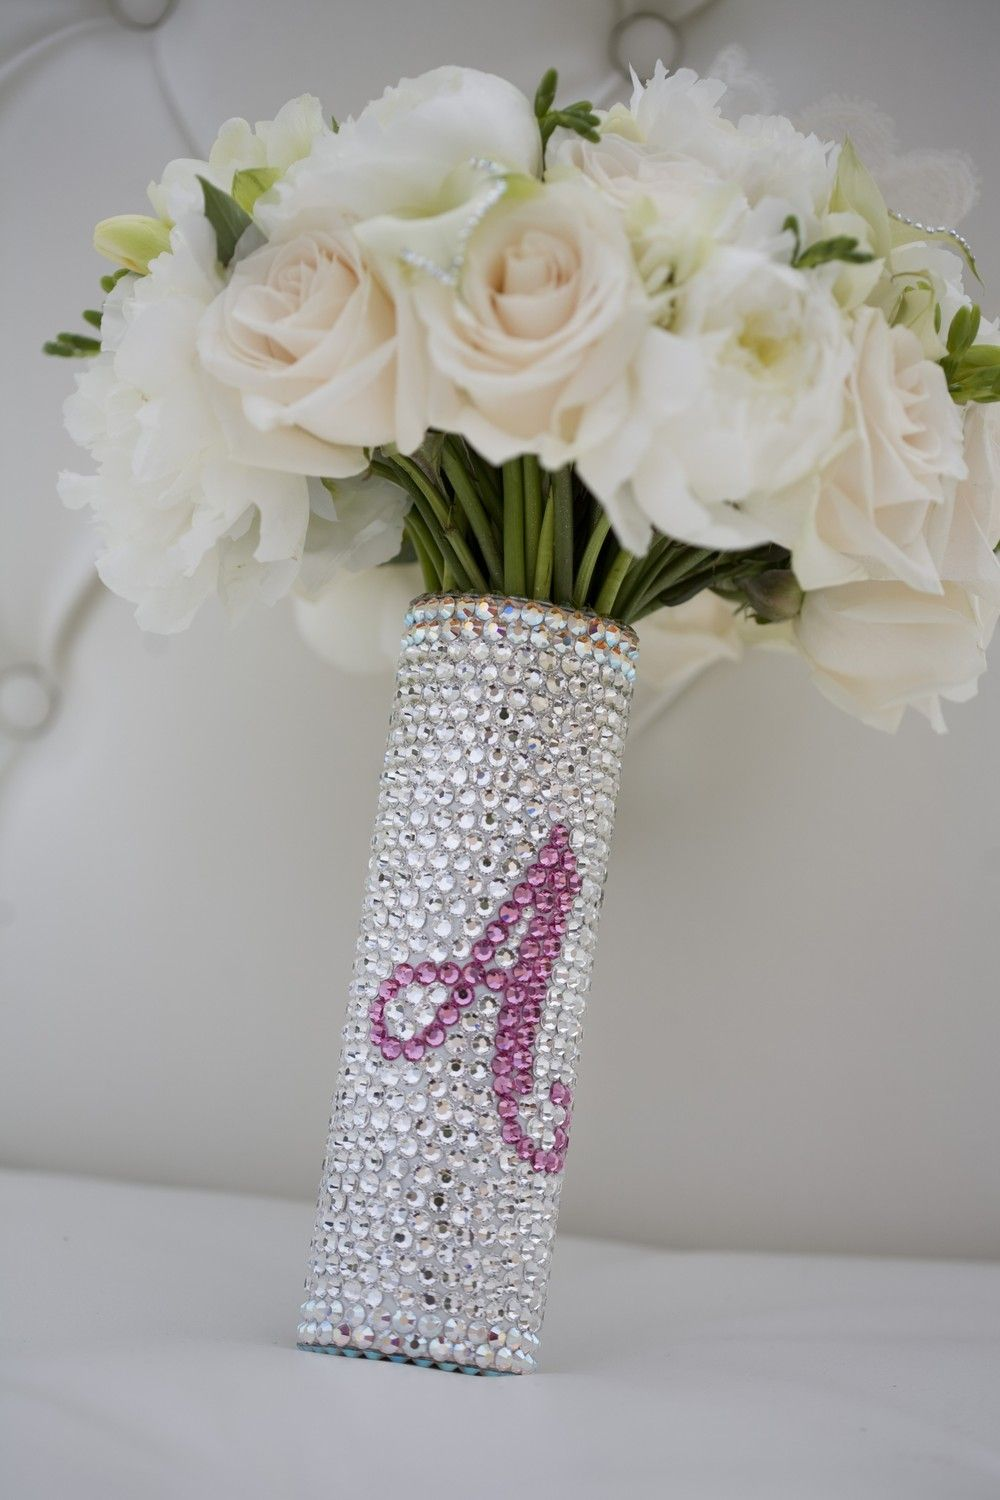 I want this as my bouquet holder with my initial d custom i want this as my bouquet holder with my initial d custom swarovski crystal bridal bouquet jeweled handle ultimate bouquet jewelry wedding blingvia izmirmasajfo